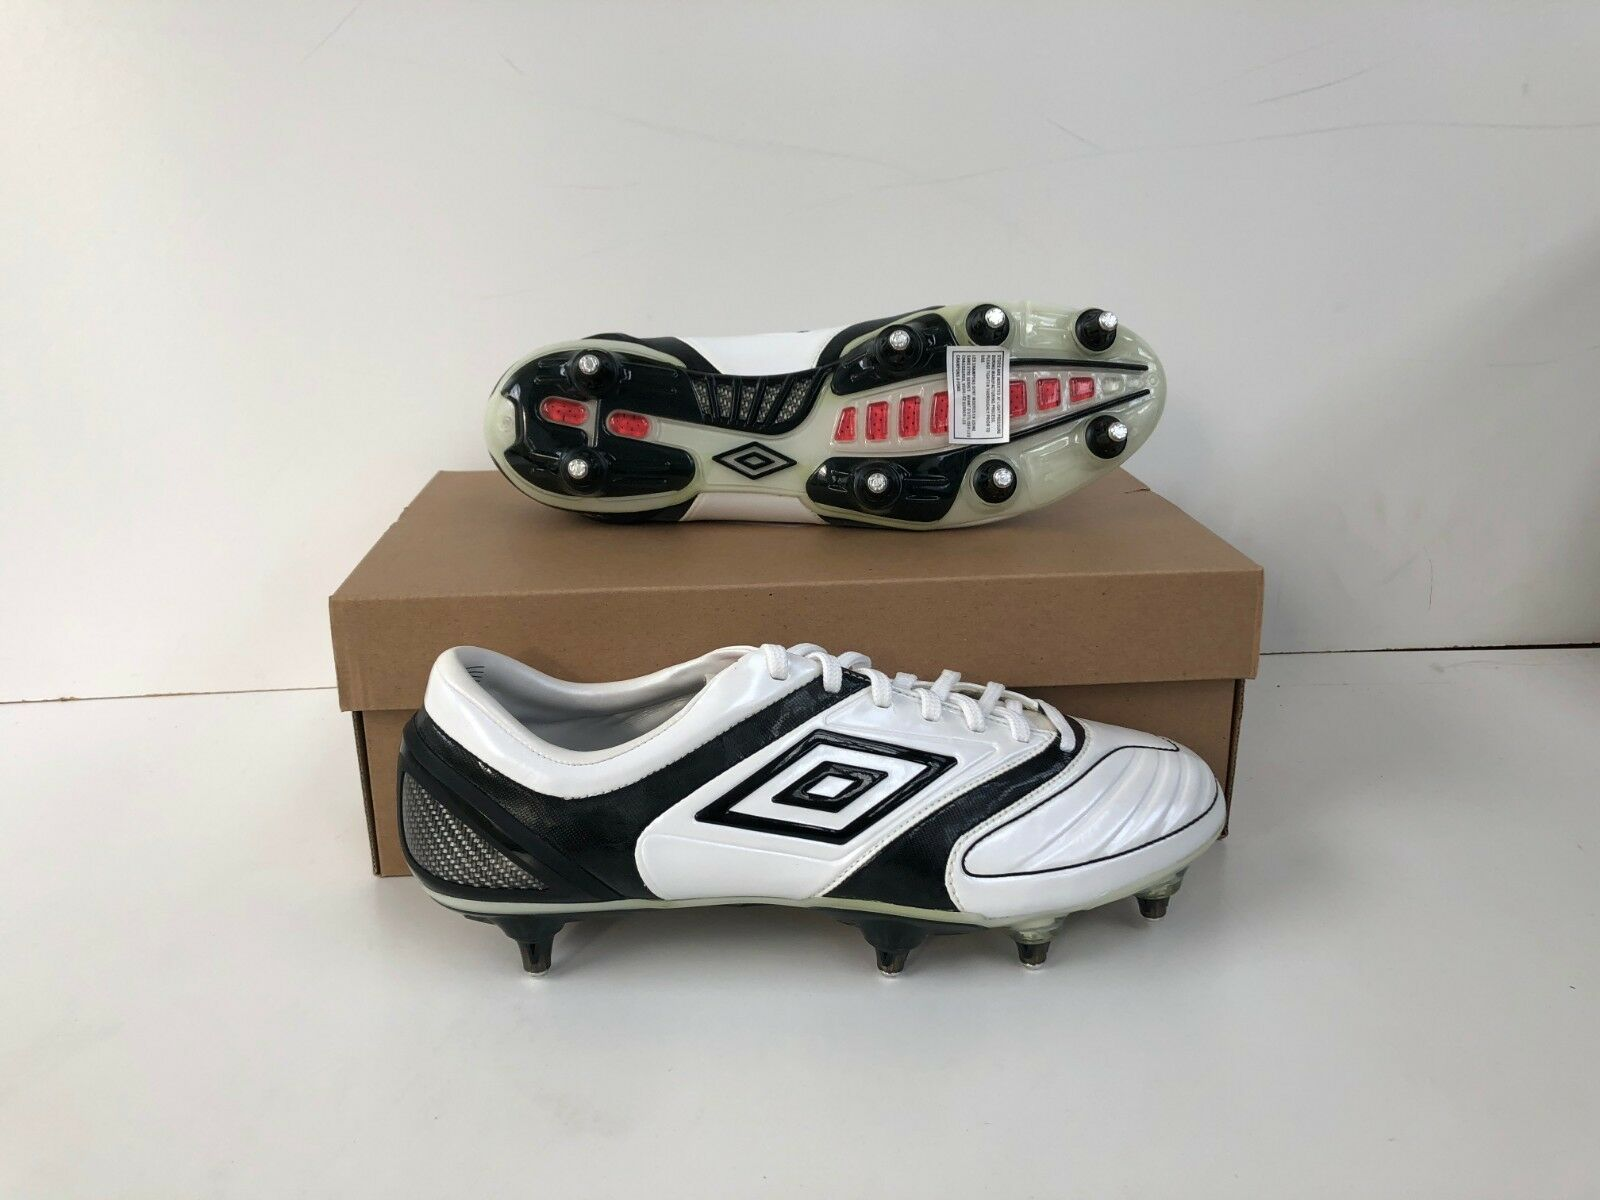 Umbro Men's Stealth Pro A SG Football Boots - White - Various Sizes - New